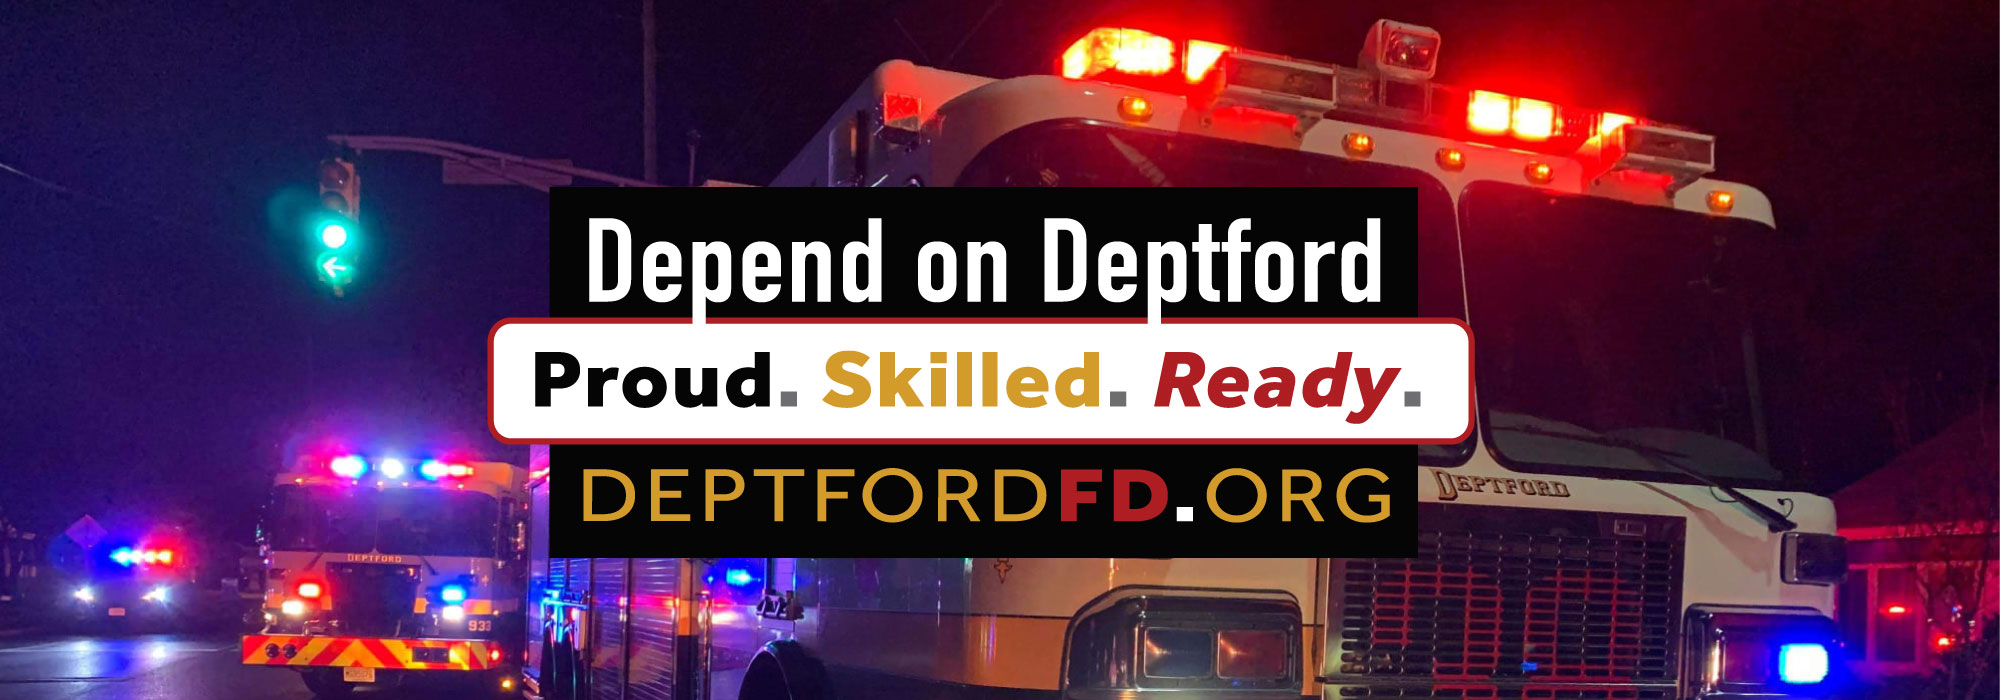 Deptford Township Fire Department